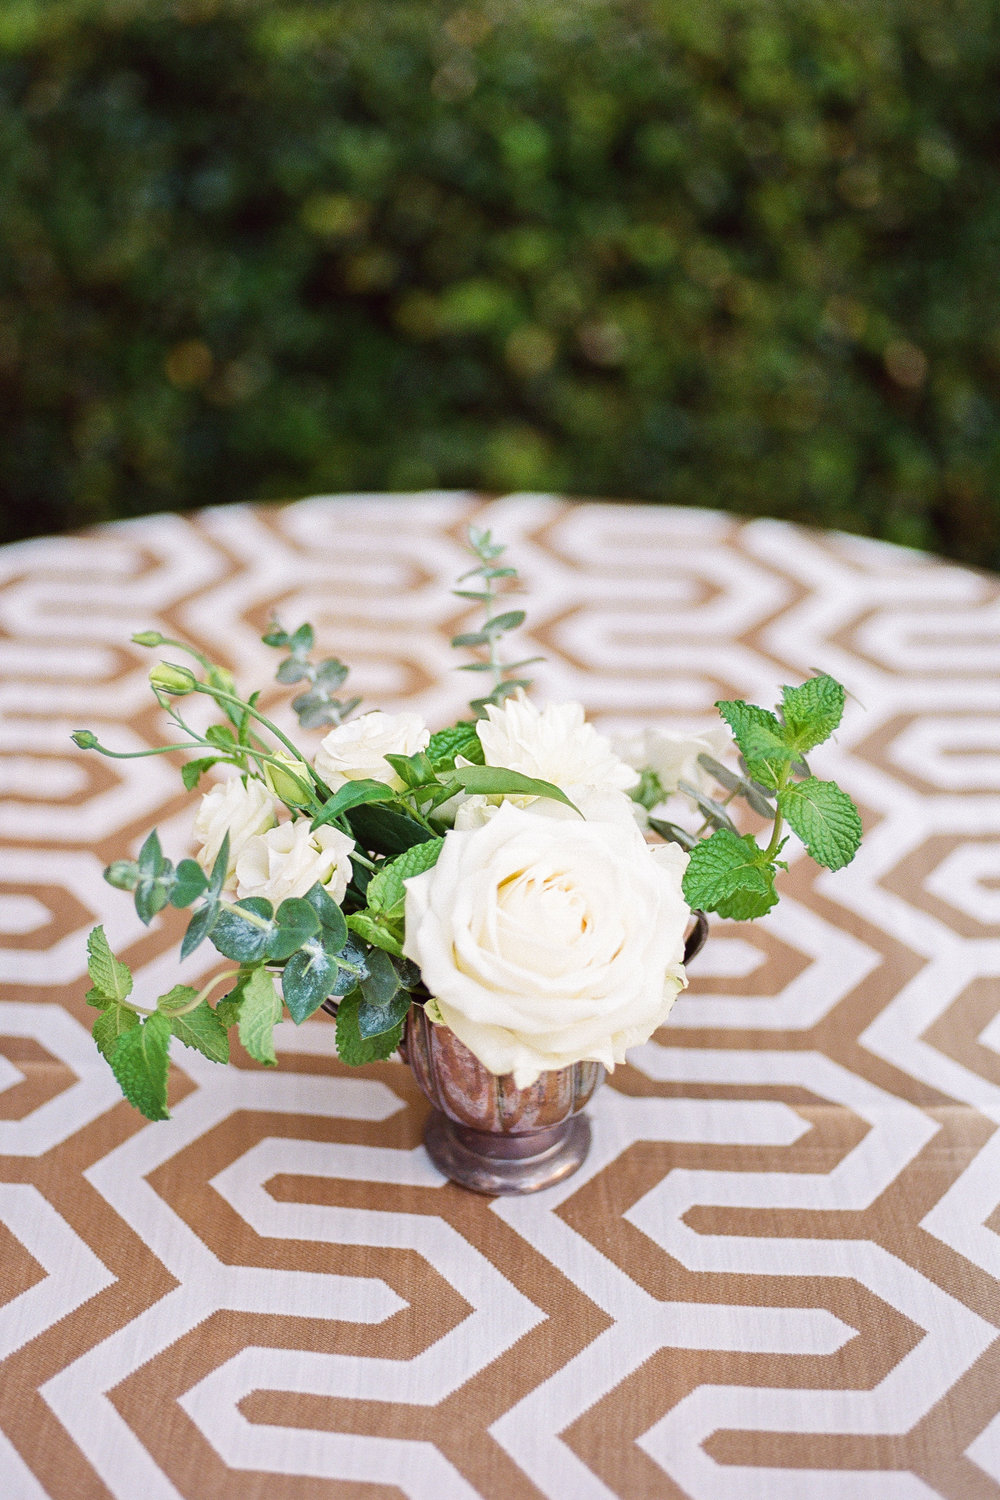 Anna Delores Photography_Lindsay & Curt 09.17.16-000040090001.jpg